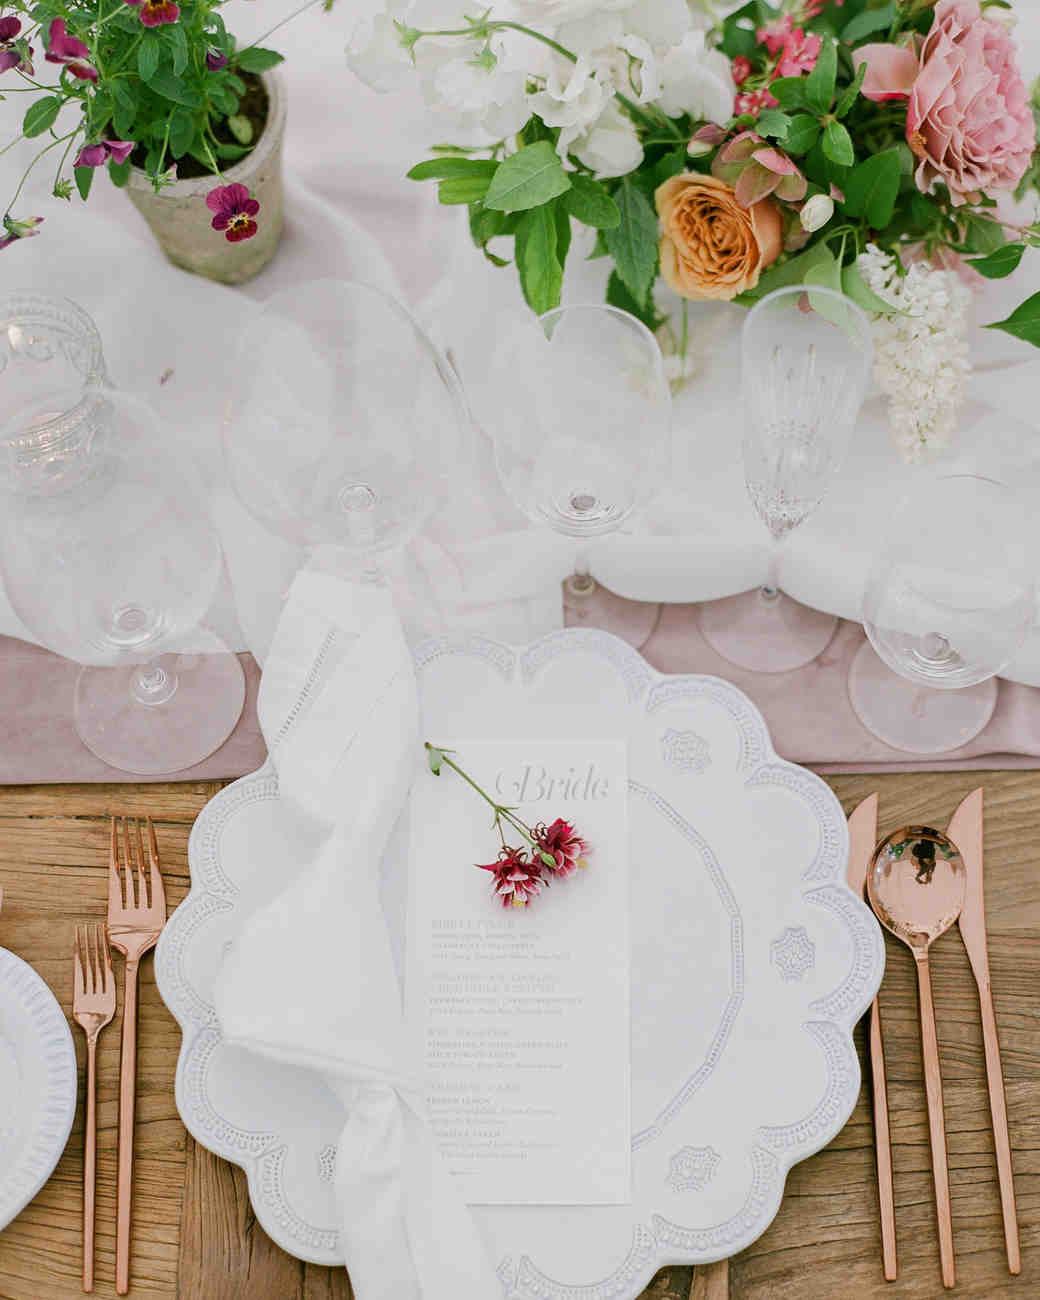 nadine dan wedding place setting